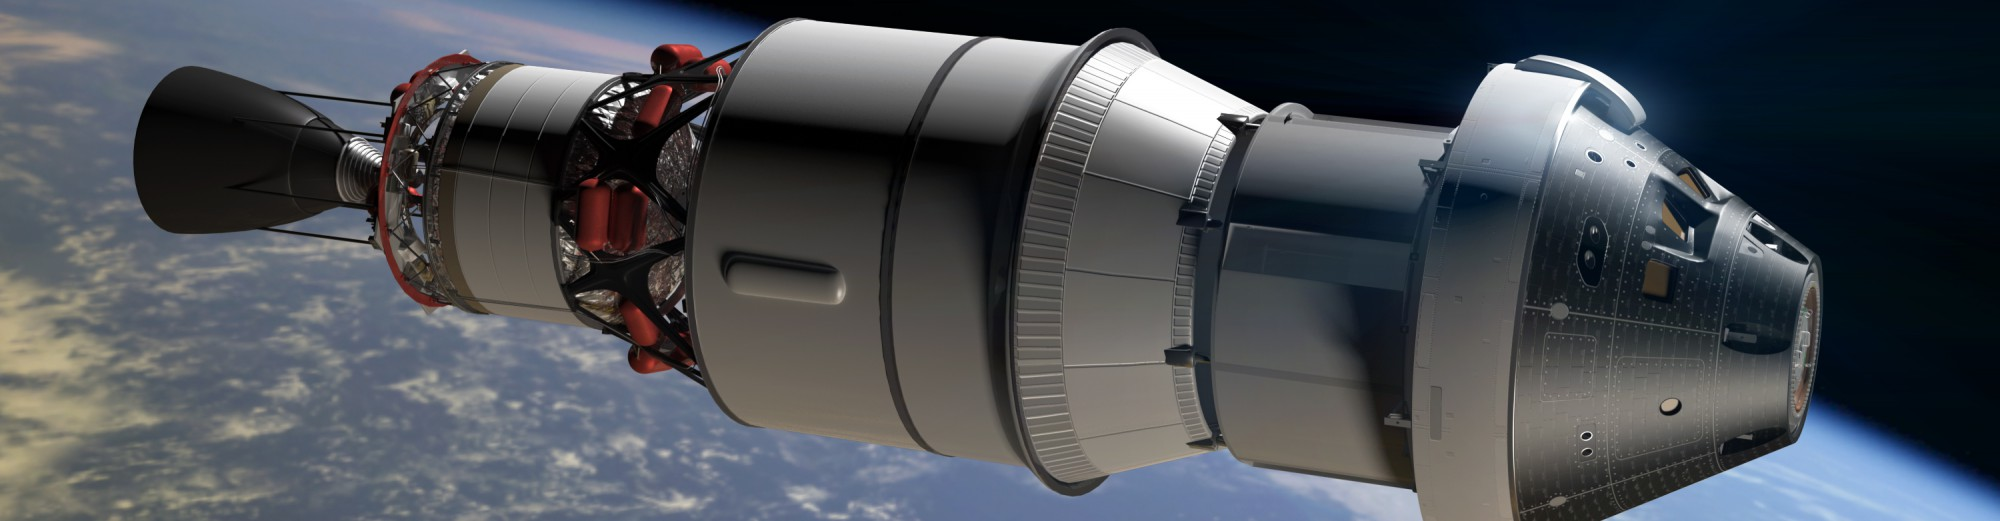 Go, Orion! NASA set to launch spacecraft on first step toward manned flights to Mars [Update: Delayed! Launched!]